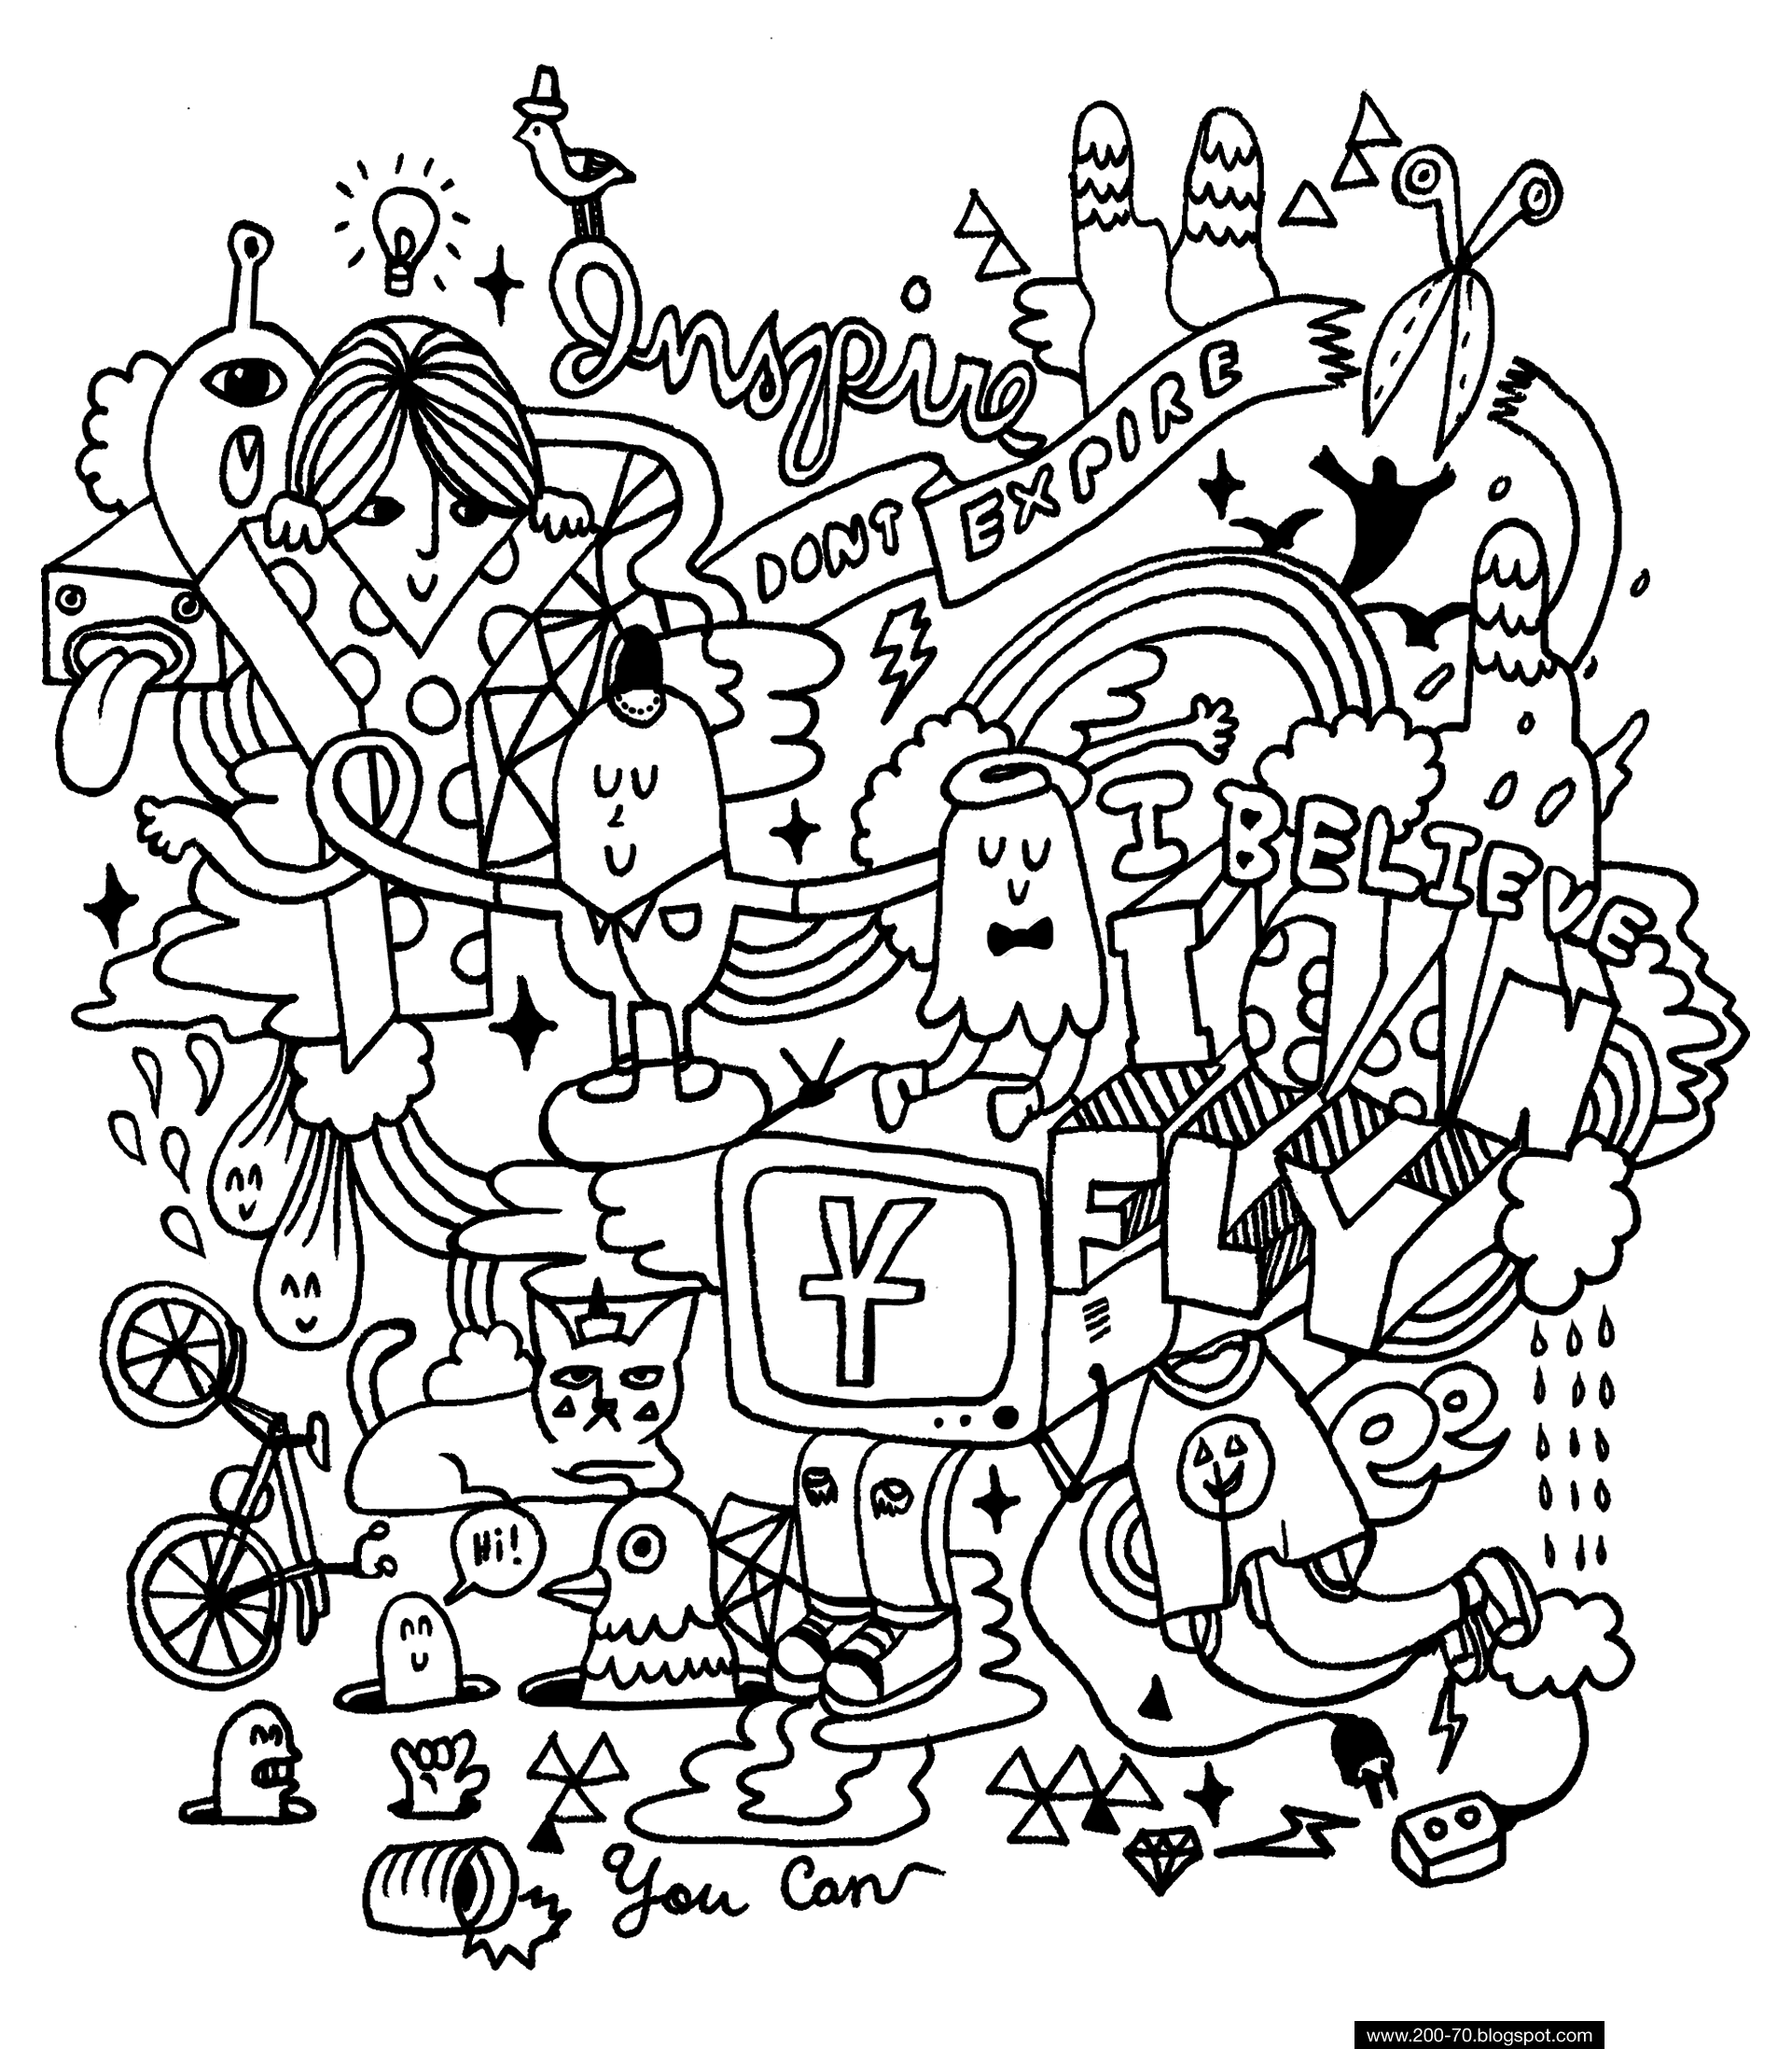 Indie rock coloring book pages - 17 Best Images About Colouring In Pages On Pinterest Coloring Coloring Books And Mandalas